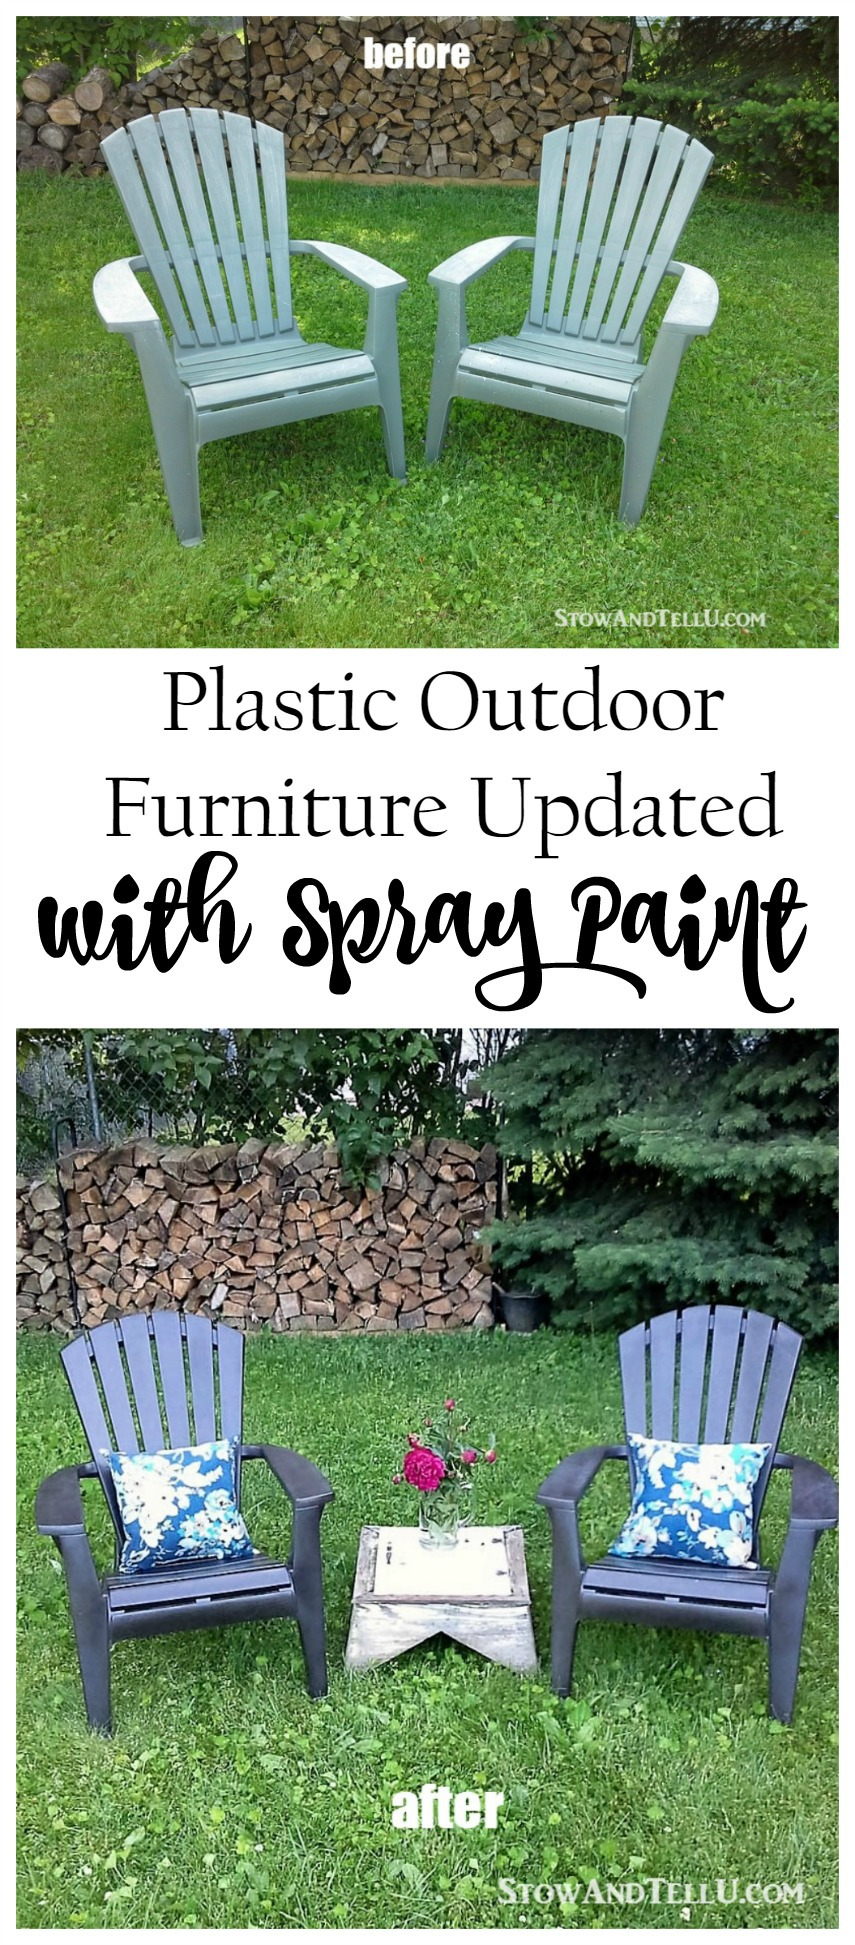 Refreshing Outdoor Plastic Furniture With Spray Paint   And A Tip For An  Easy Spray Paint Part 76